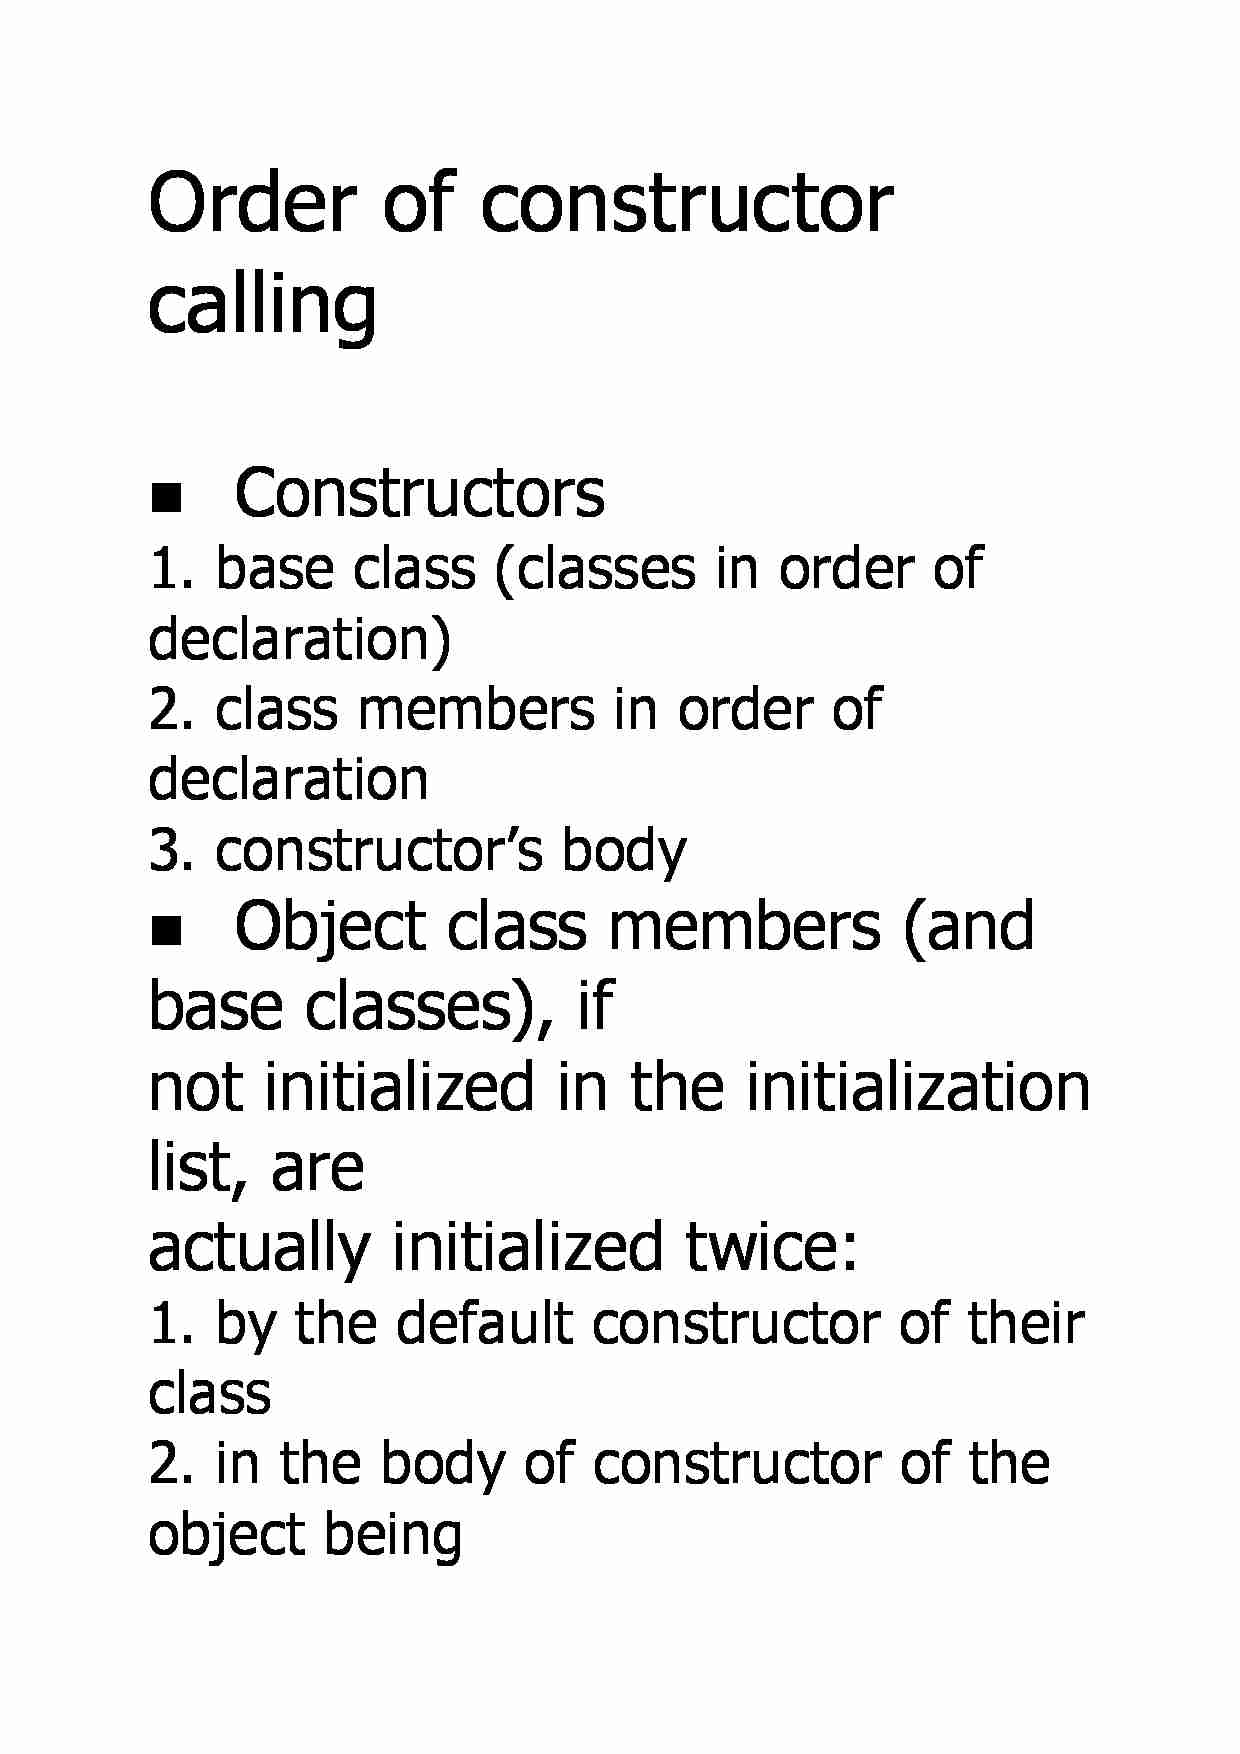 Order of constructor calling - strona 1